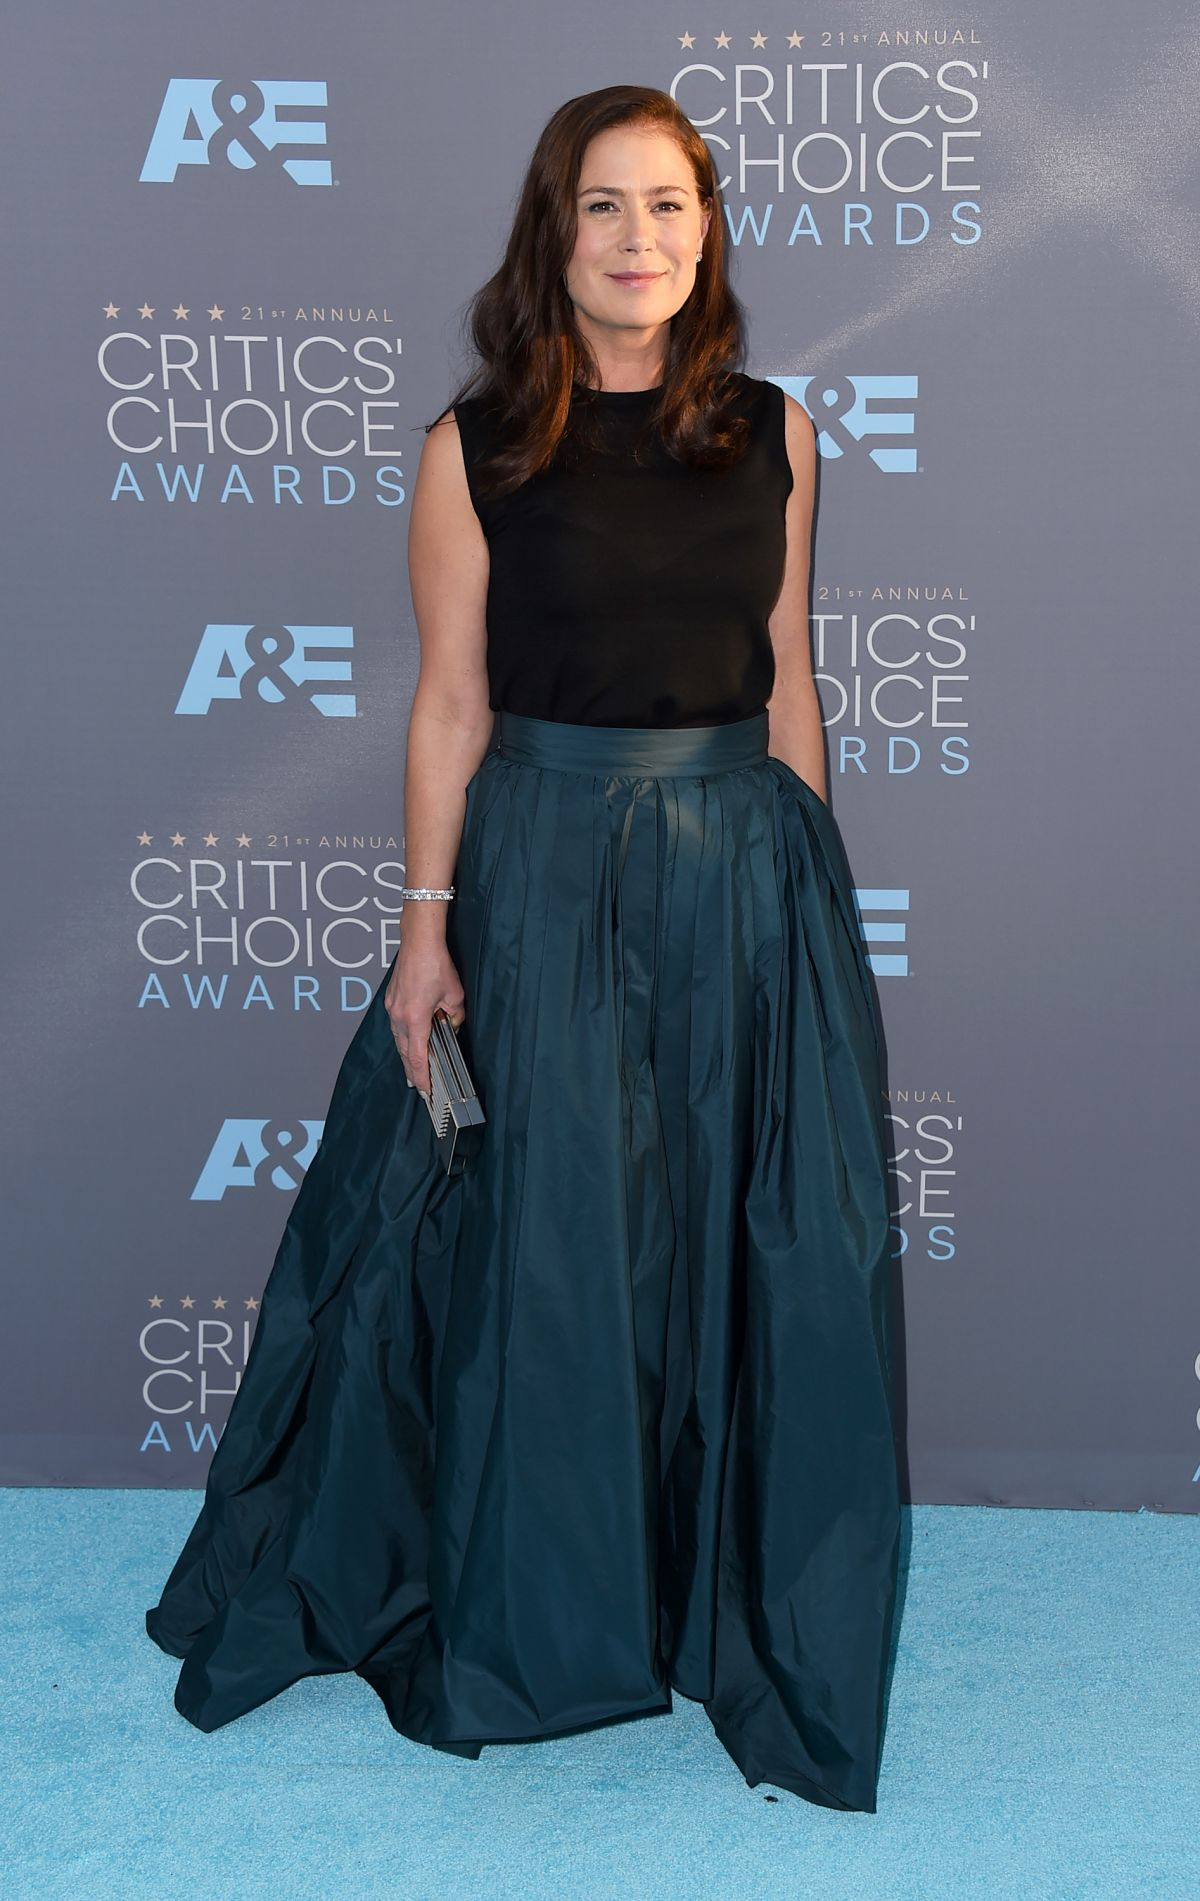 MAURA TIERNEY at Critics's Choice Awards 2016 in Santa Monica 01/17/2016